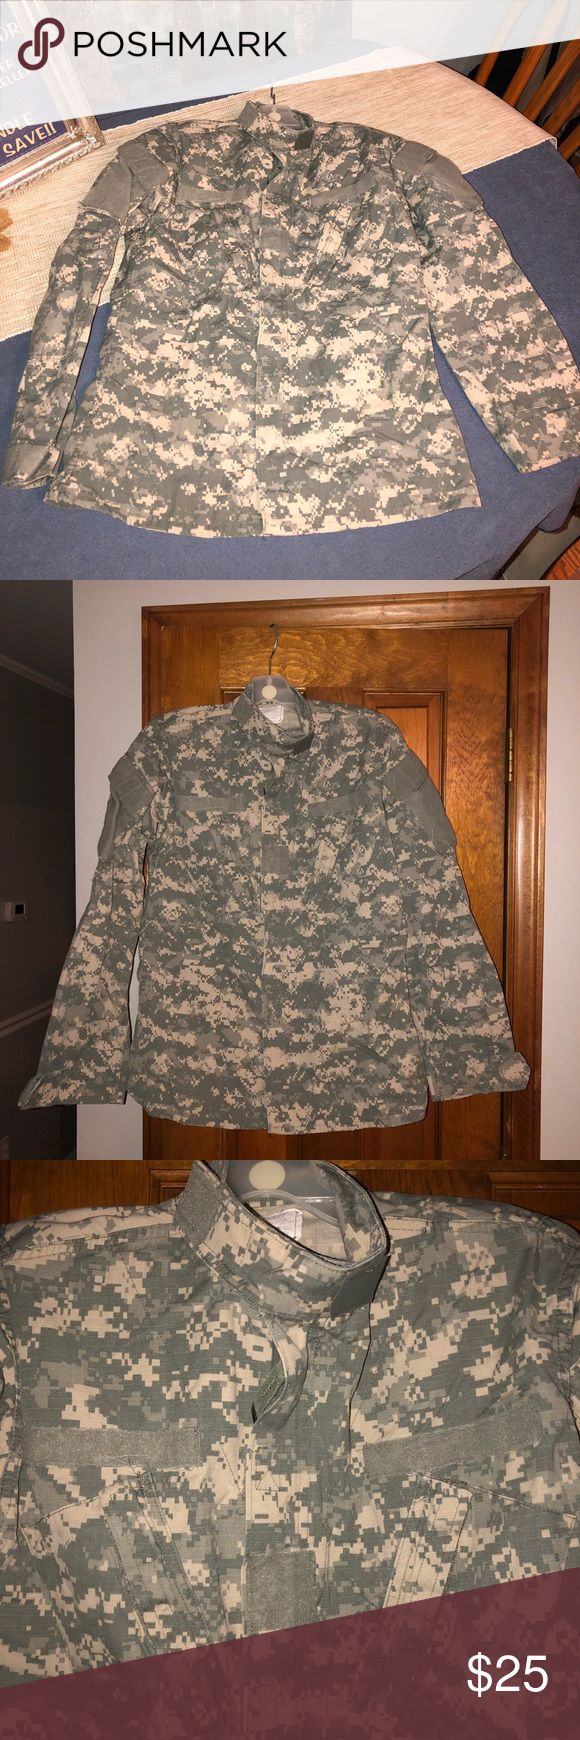 "Size Small US Army Digital Camo BDU Top Size Small US Army Digital Camo BDU Shirt. Army Combat Uniform. Jacket Coat. 50% cotton 50% nylon. Team soldier certified. Size Small/Long. Height 71""-75"". Chest 33""-37"".   Bin 23 Jackets & Coats Military & Field"